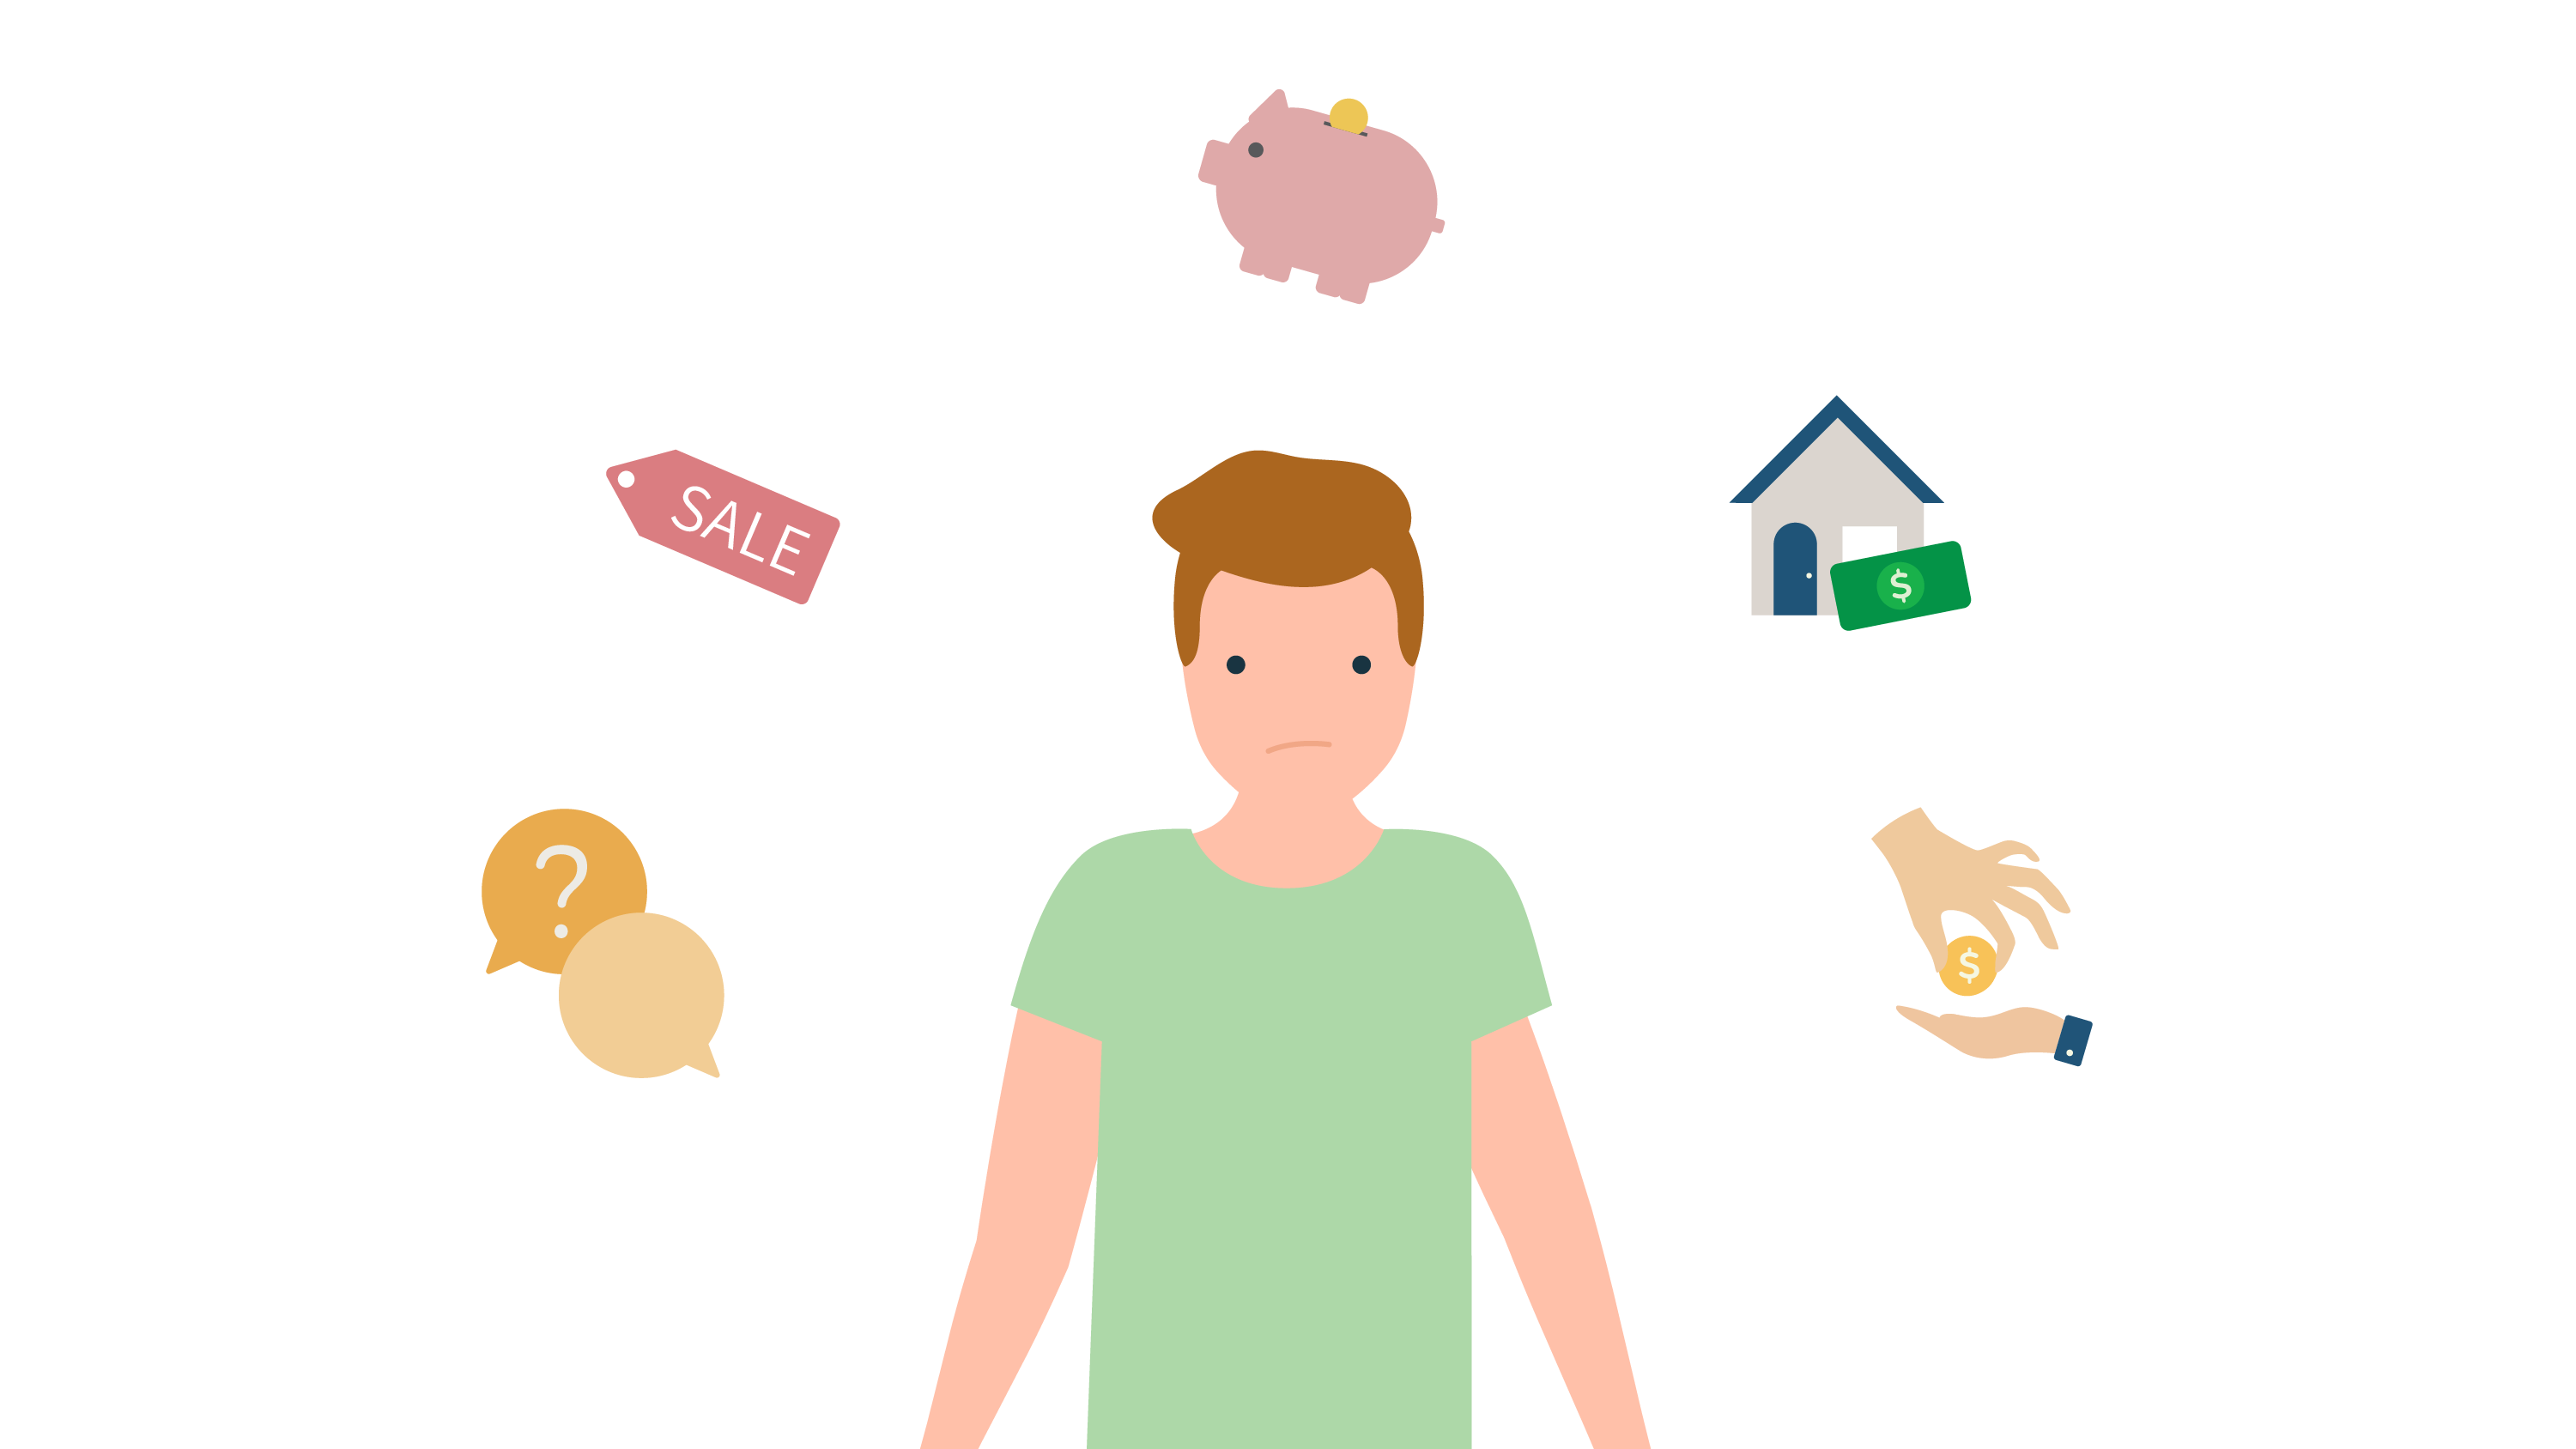 Illustration of man standing with icons of speech bubbles, a sale ticket, a piggy bank, a house with a $ sign and a hand giving money to another hand.